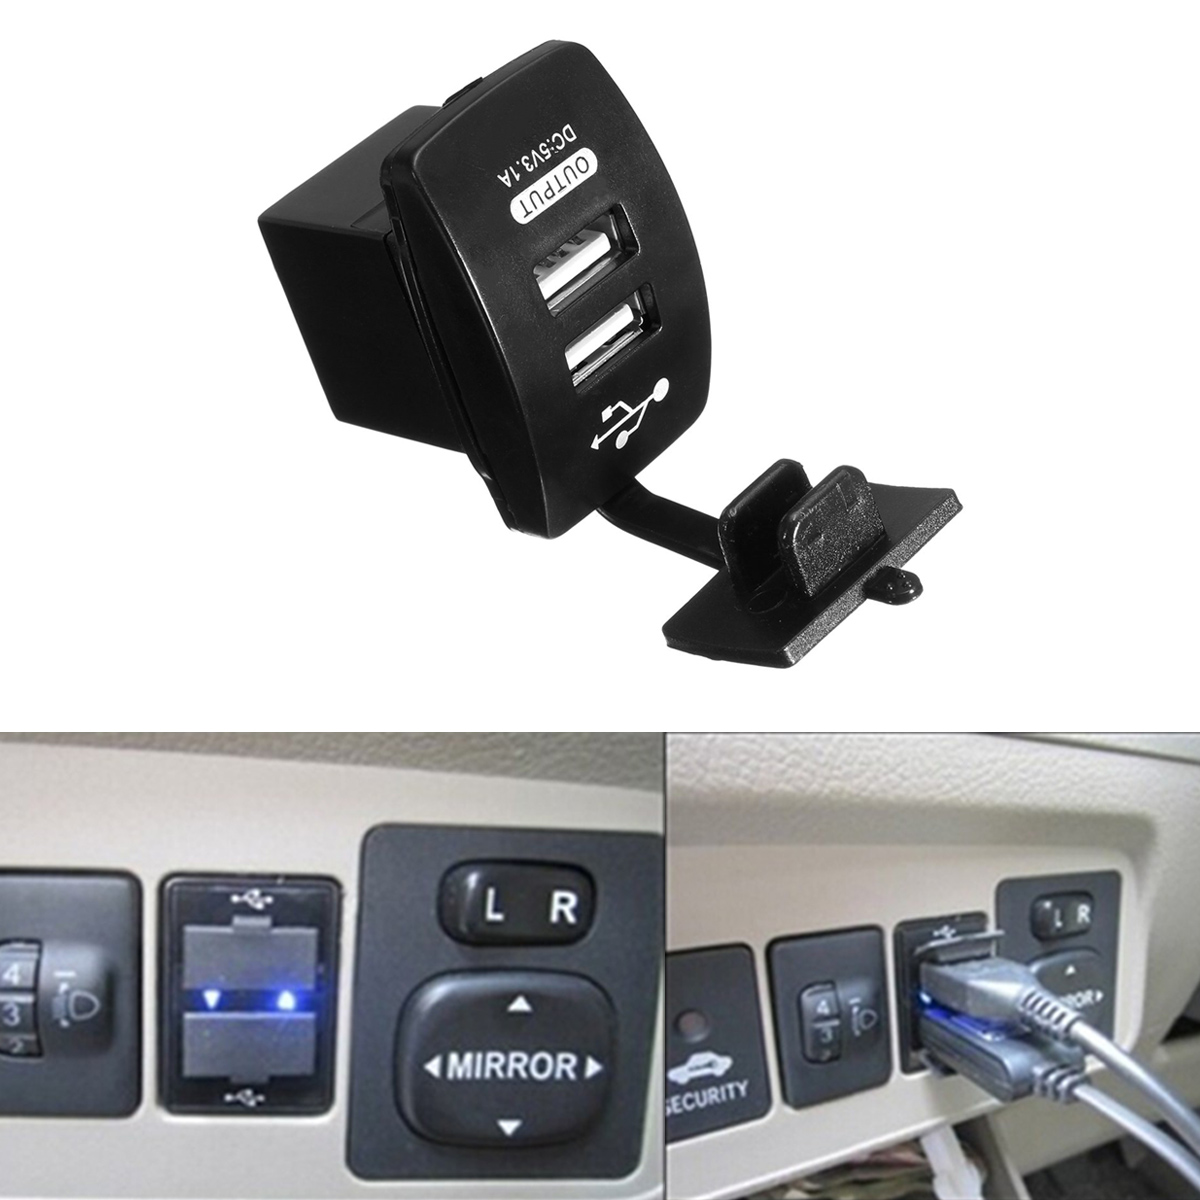 Universal Motorcycle Dual USB Car Cigarette Lighter Socket Charger Power Adapter Splitter 12V 1A 2.1A Waterproof